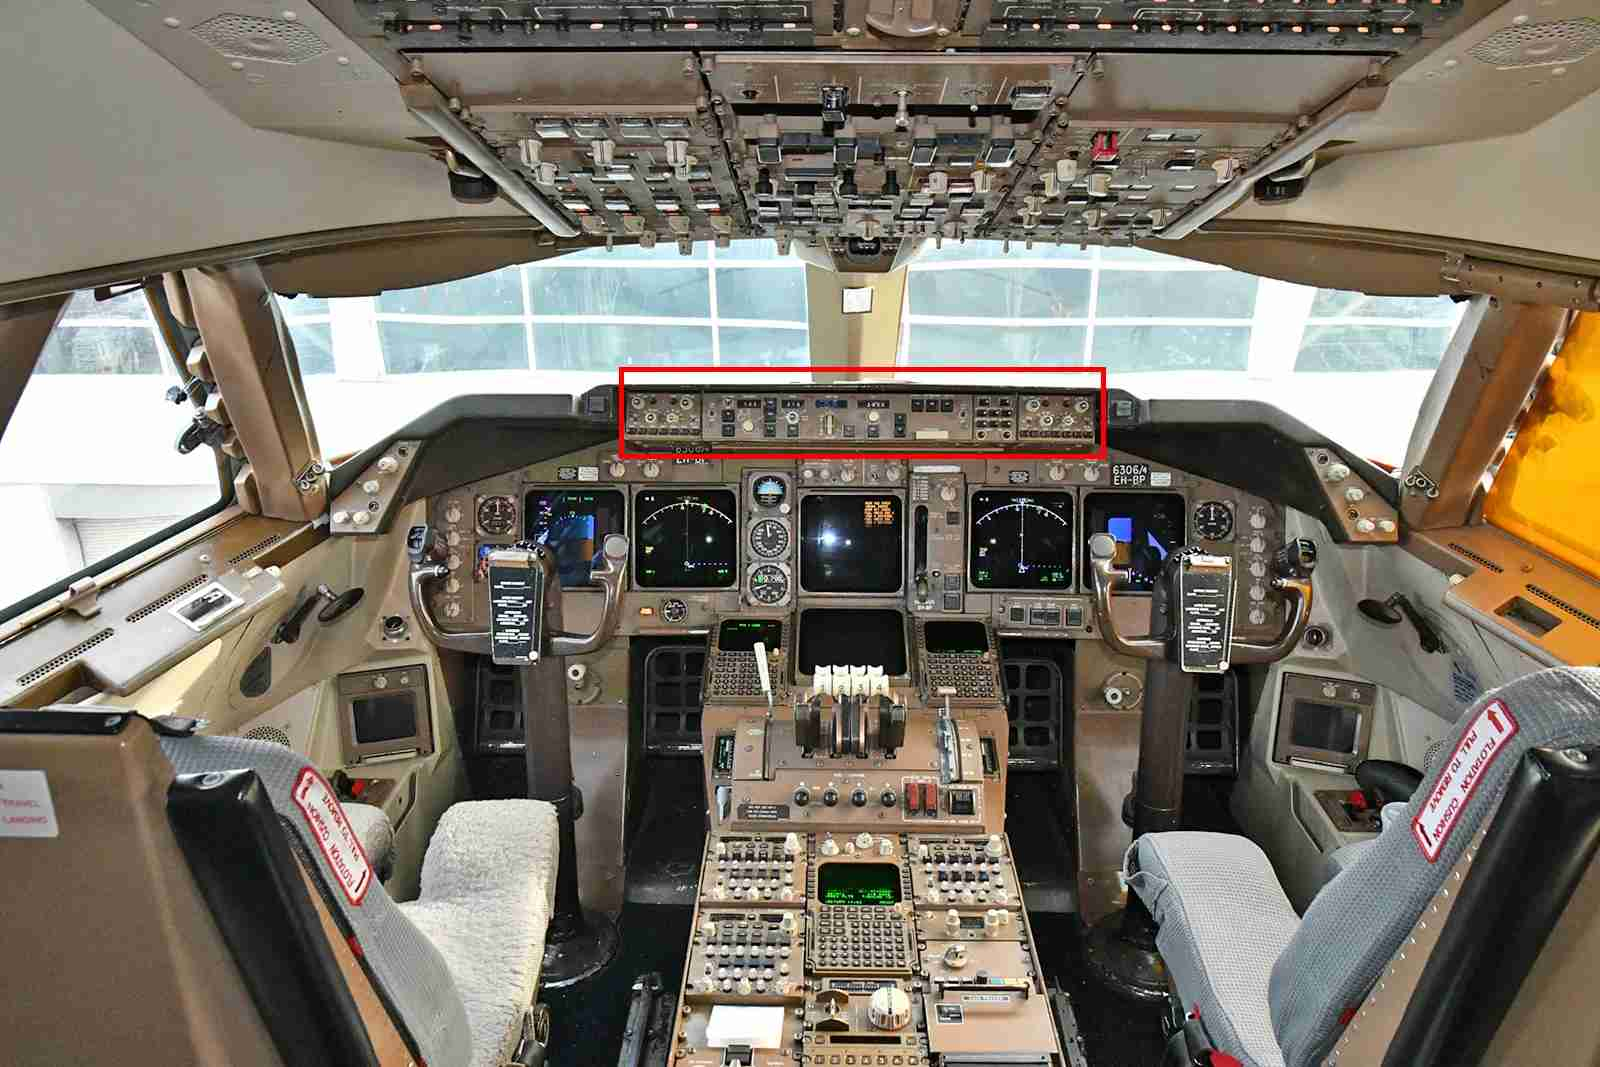 The red rectangle highlights the autopilot controls of this Boeing 747-400 (Photo by Alberto Riva/TPG)